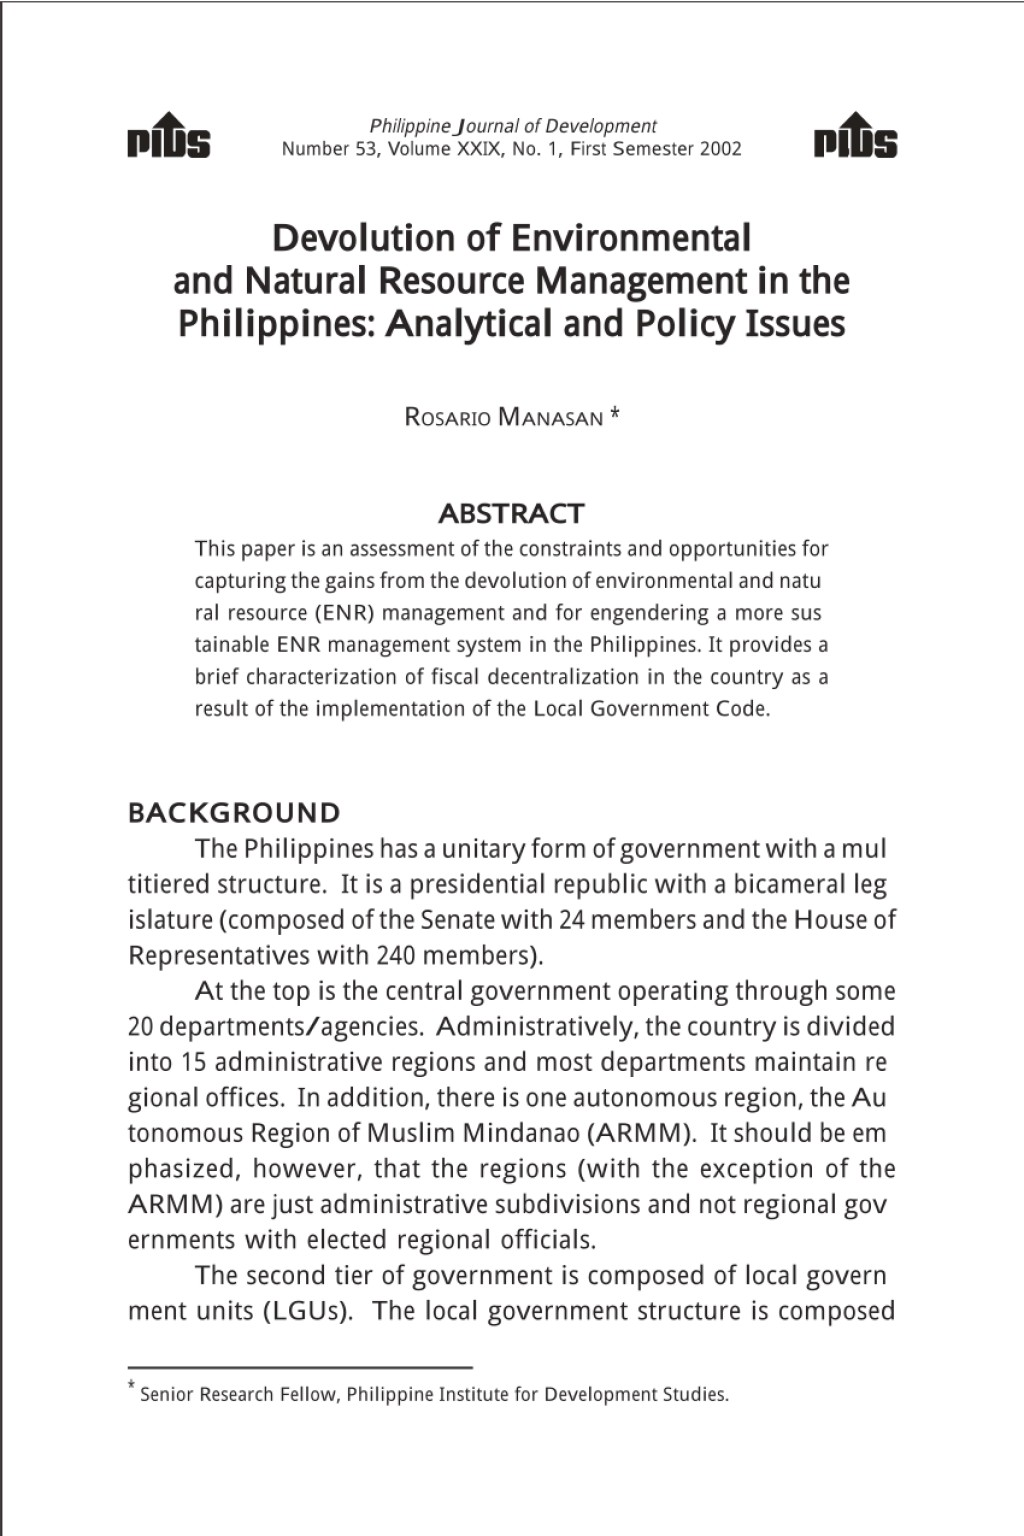 008 Natural20esources Essay Environment20esource Economics Paper Of Pakistan In Urdu On20 Research Magnificent Topics Large